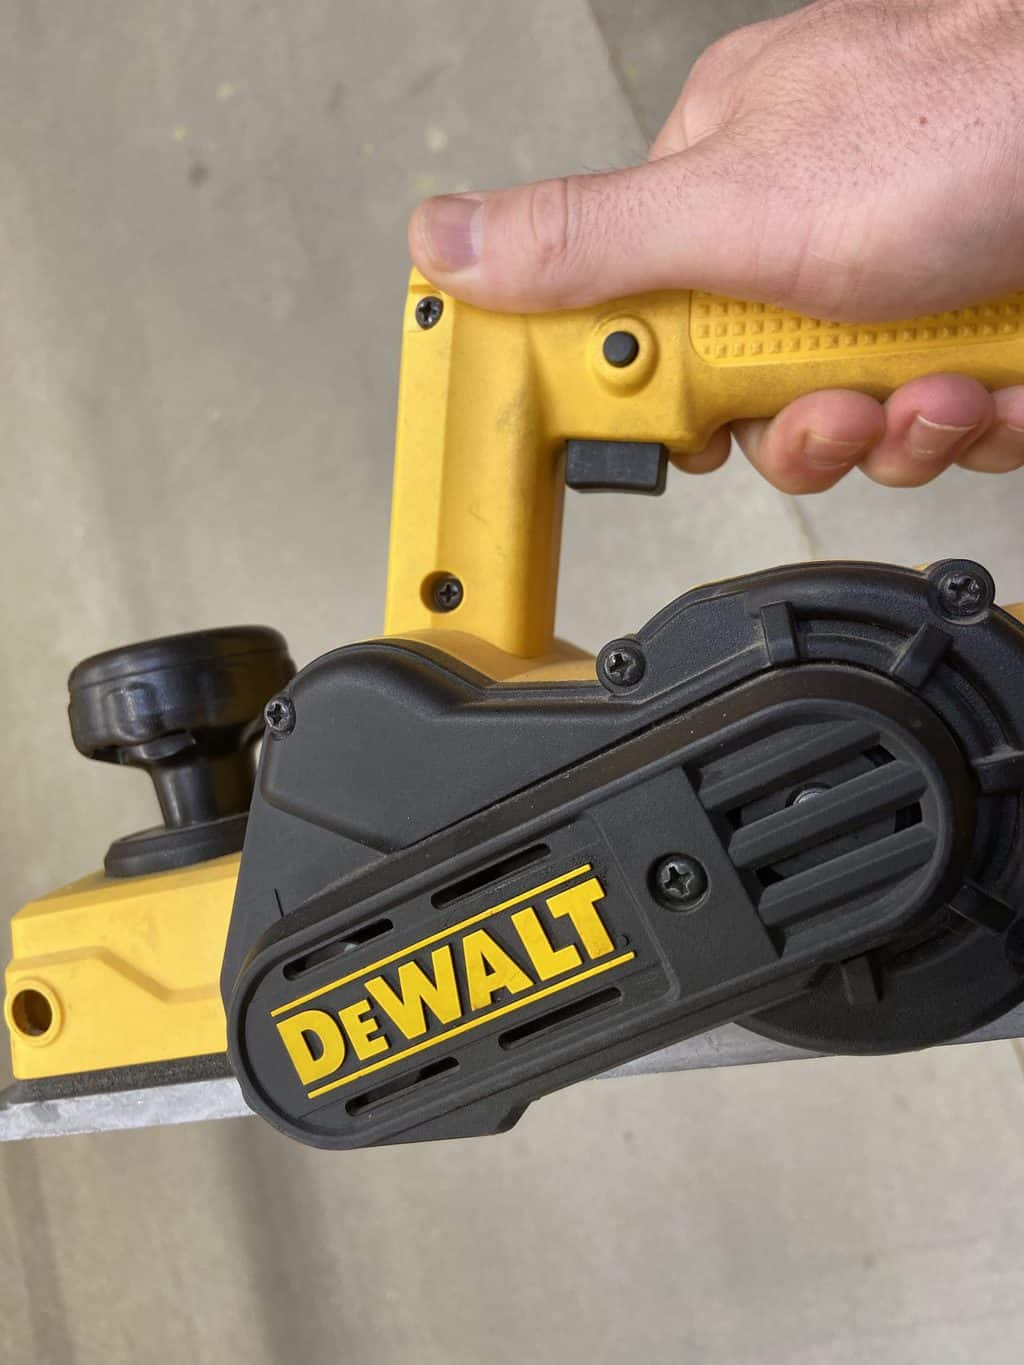 A man holds and electric powered hand planer